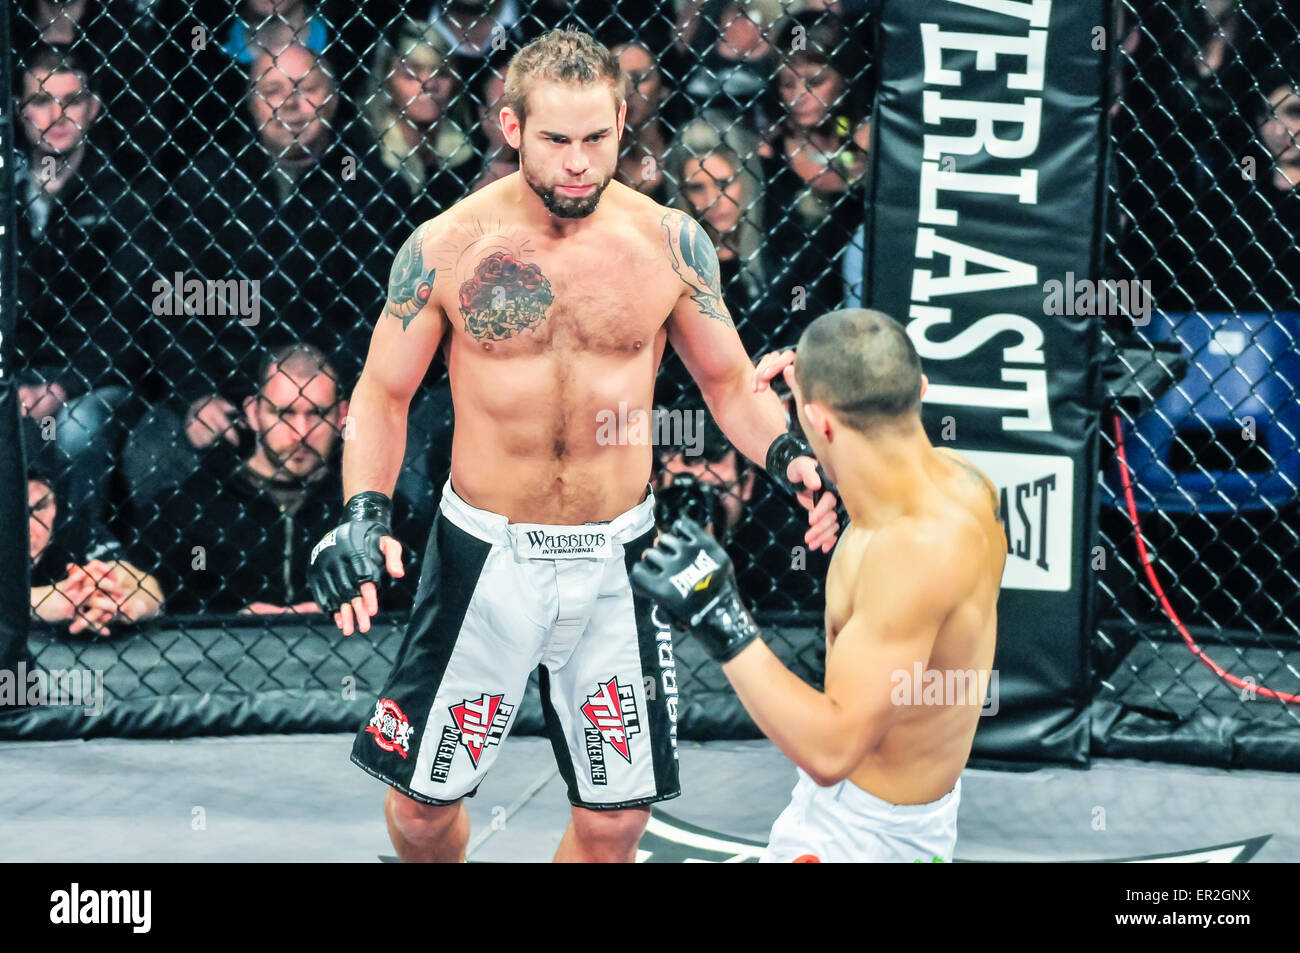 UFC fighter Rich Clementi in the ring at an MMA cage fight. - Stock Image